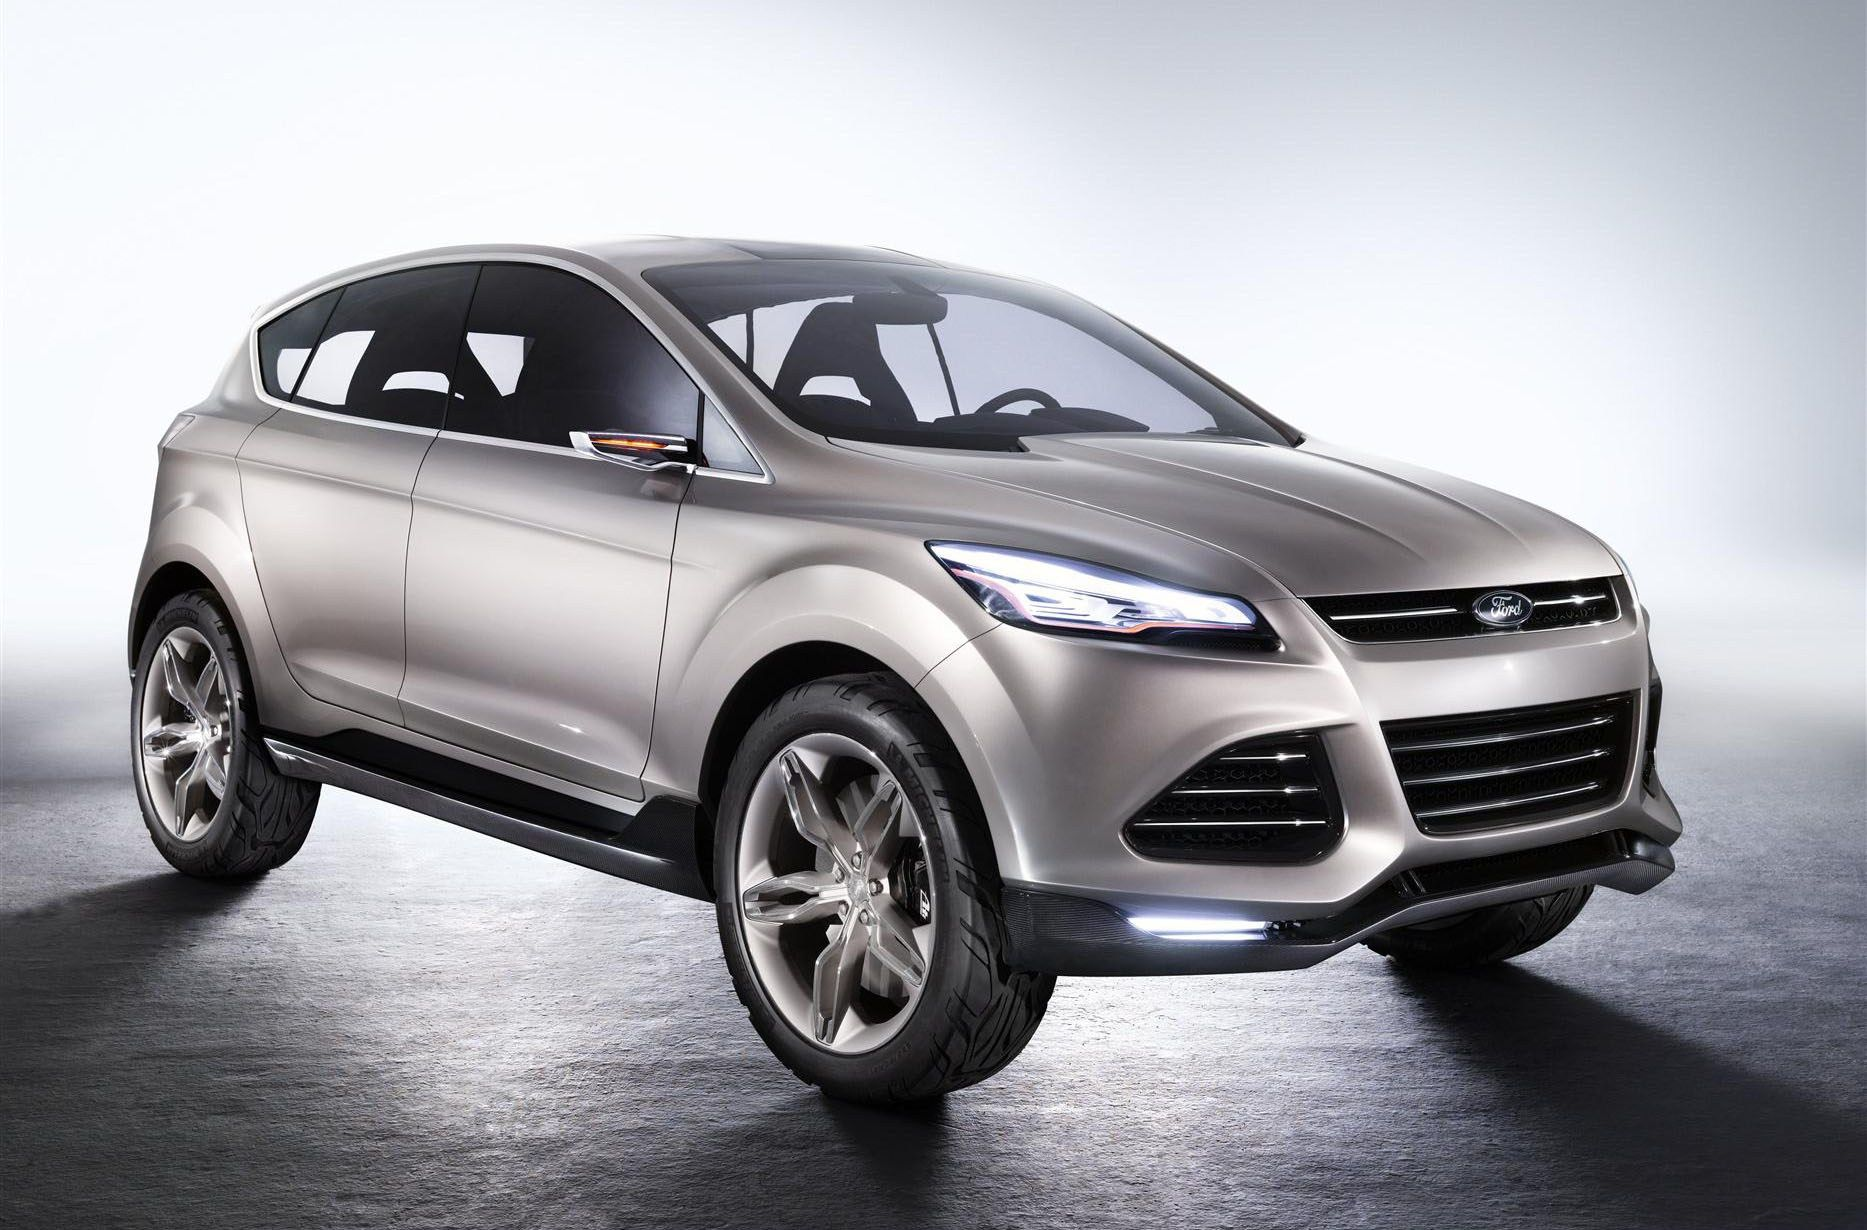 Ford Escape 2014 Custom >> 2020 Ford Escape Redesign, Concept, Price, Release Date Rumor - Car Rumor | Ford | Pinterest ...